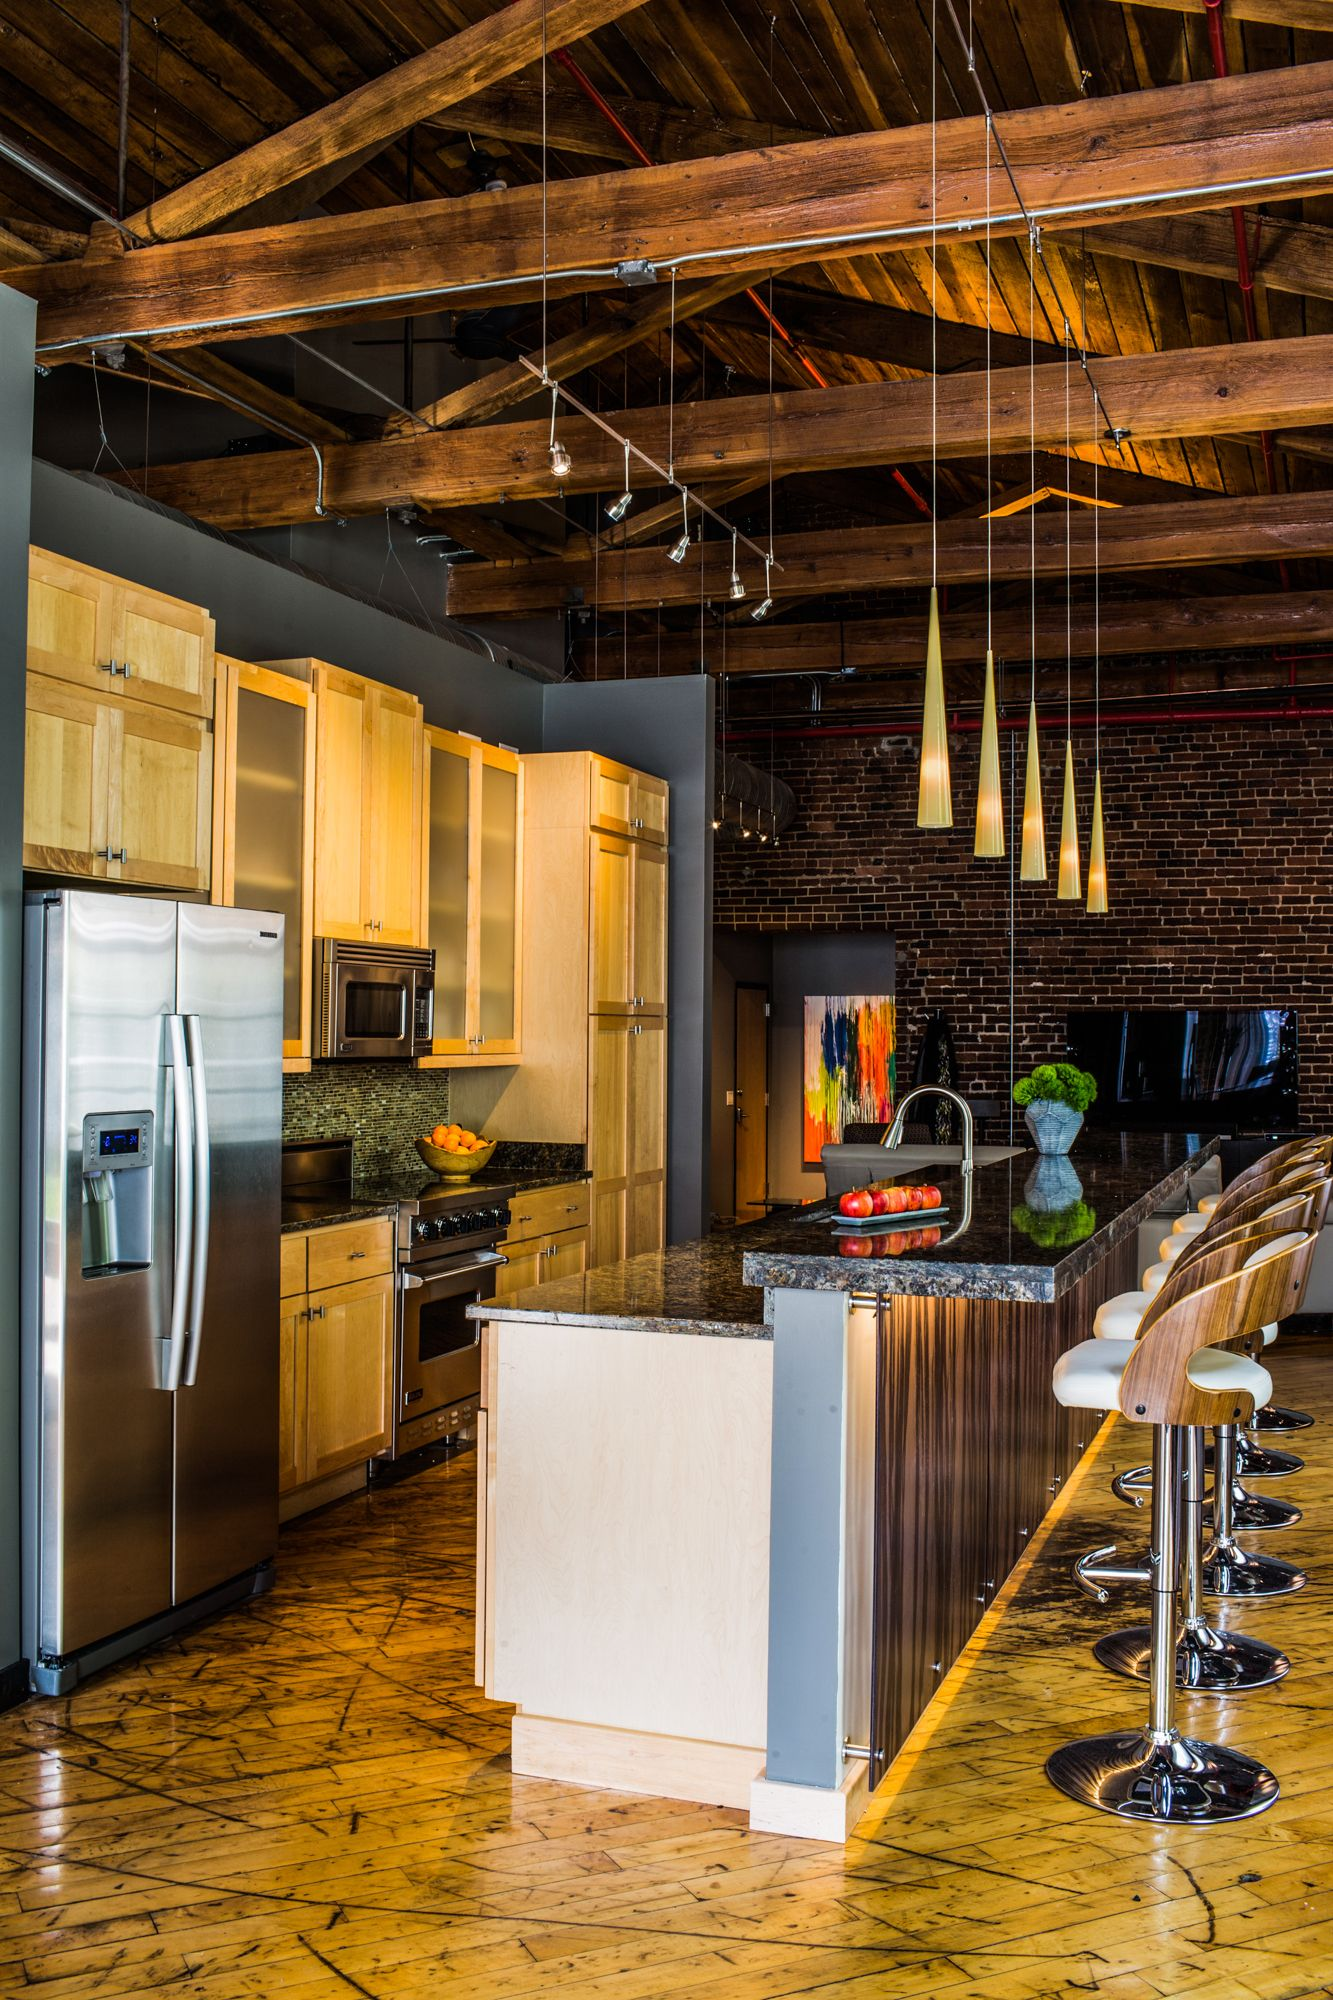 contemporary kitchen design with exposed beams and brick